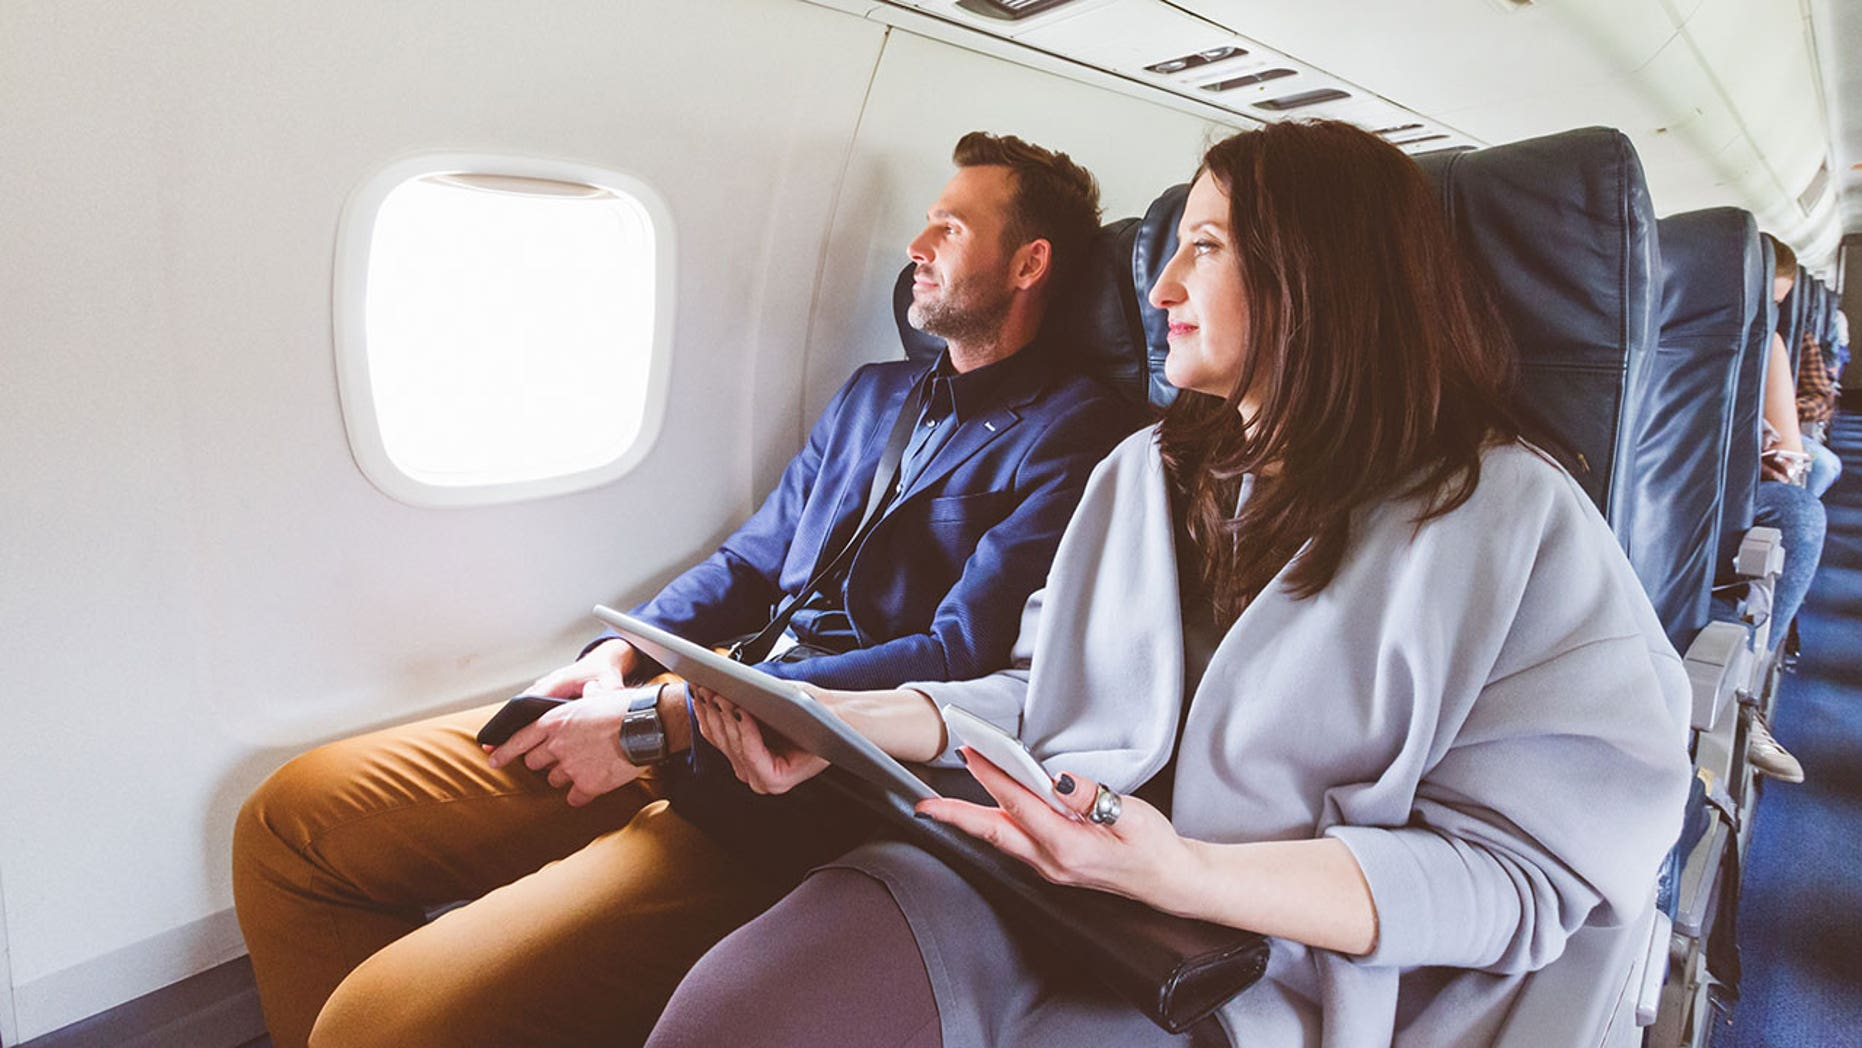 Depending where and when you fly, and there's a simple trick to finding the cheapest airline every time you shop.